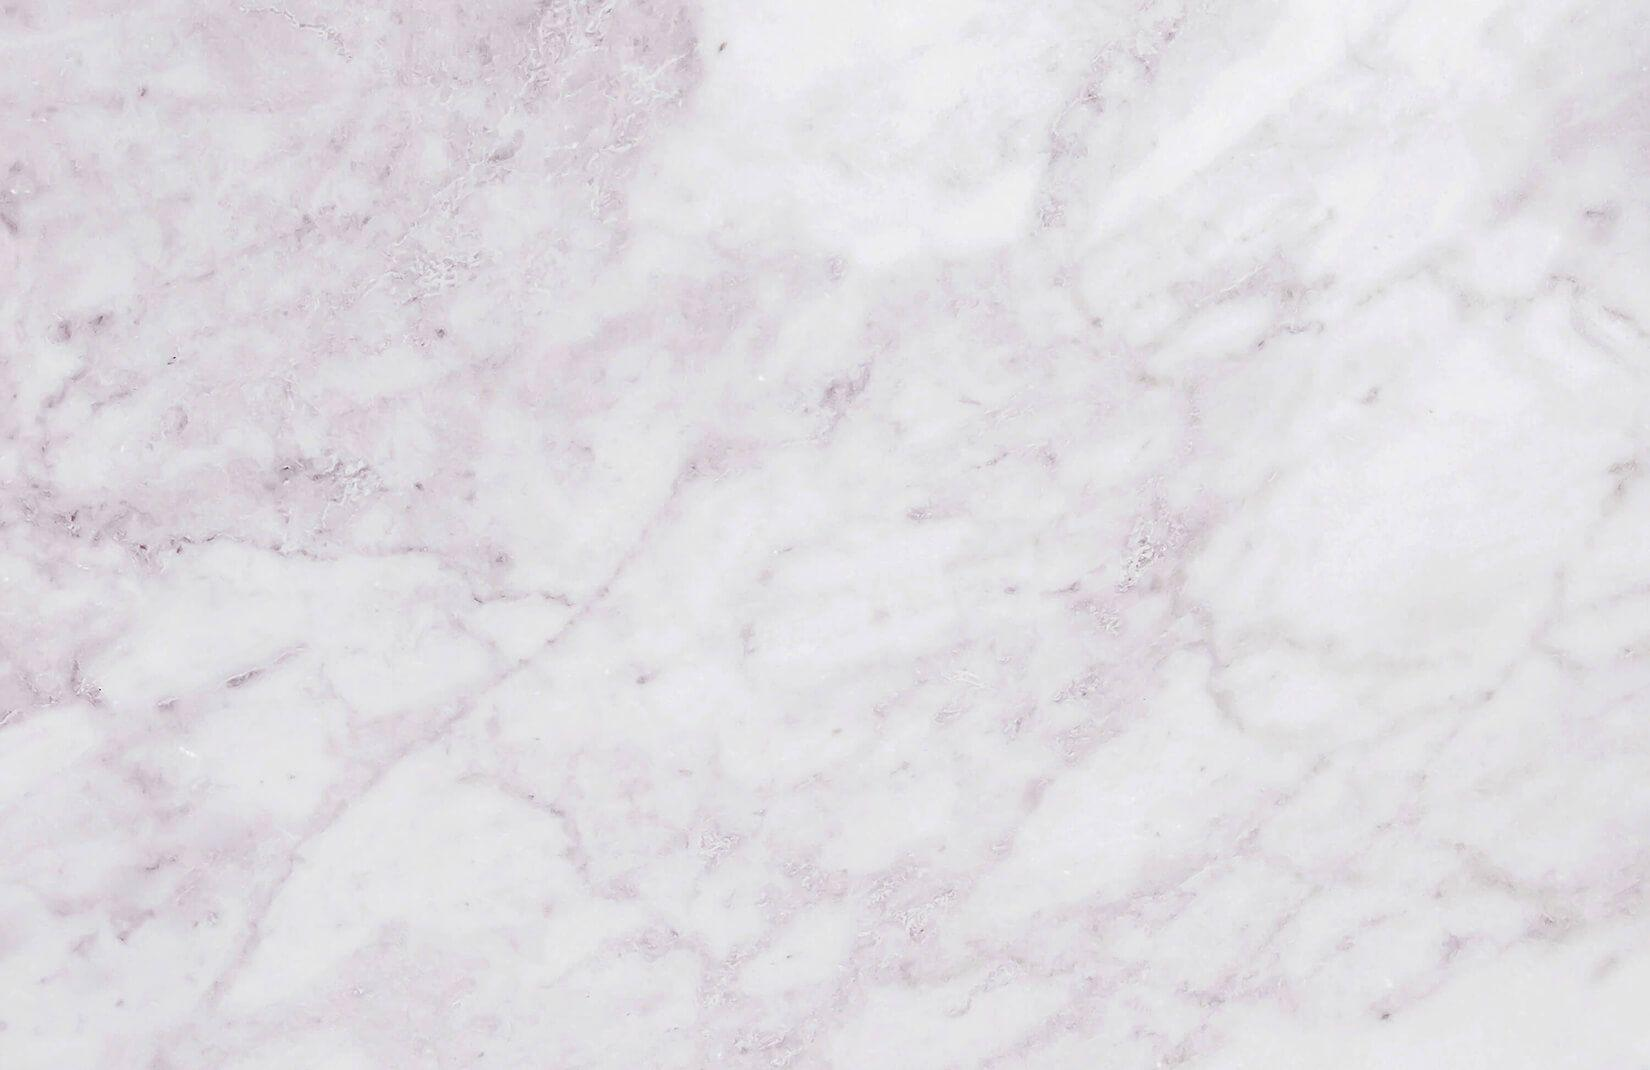 Pink Marble Wallpapers - Wallpaper Cave